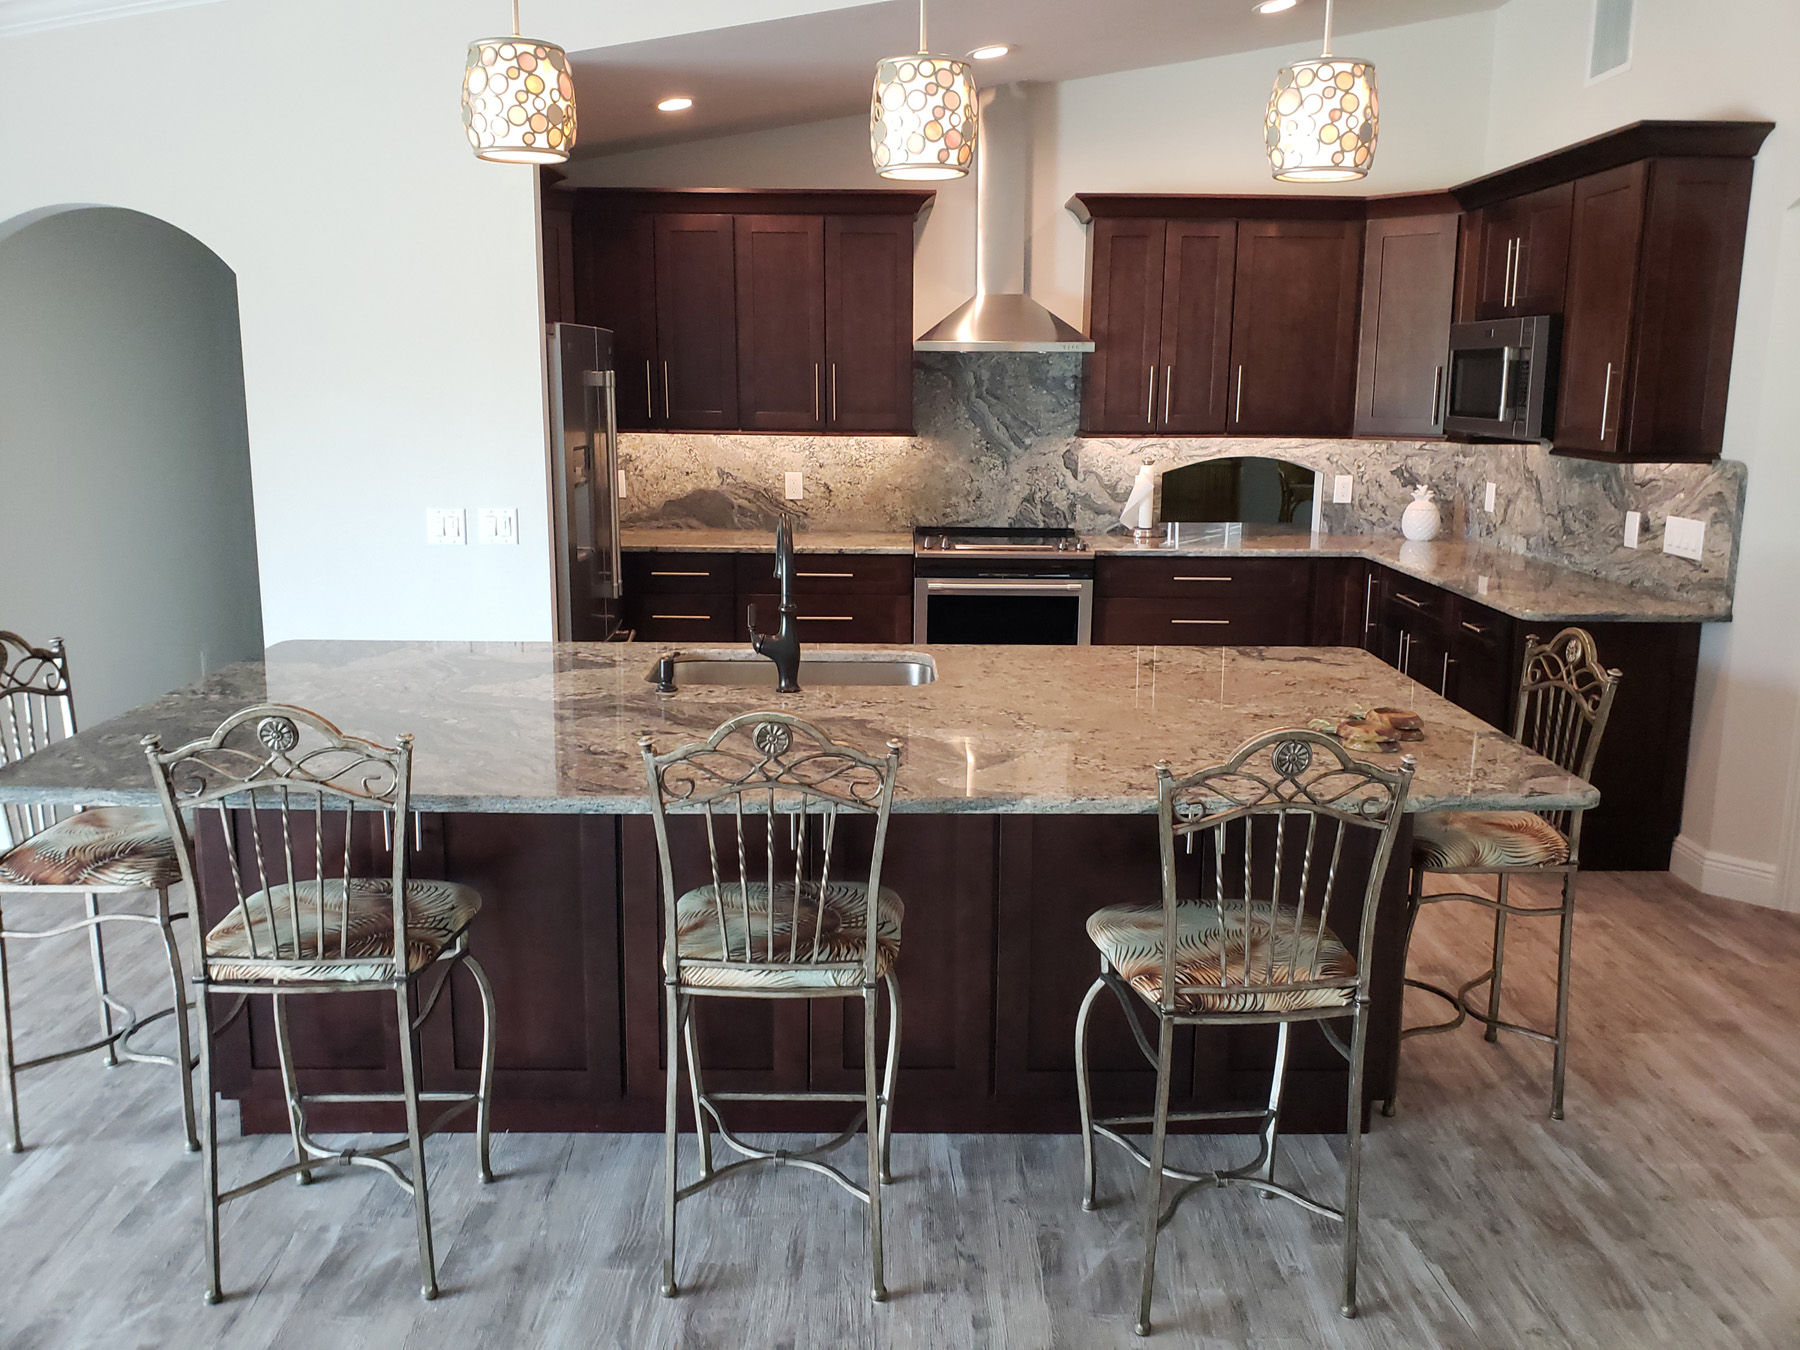 Buy Kitchen Cabinets Online | RTA - Ready to Assemble ...